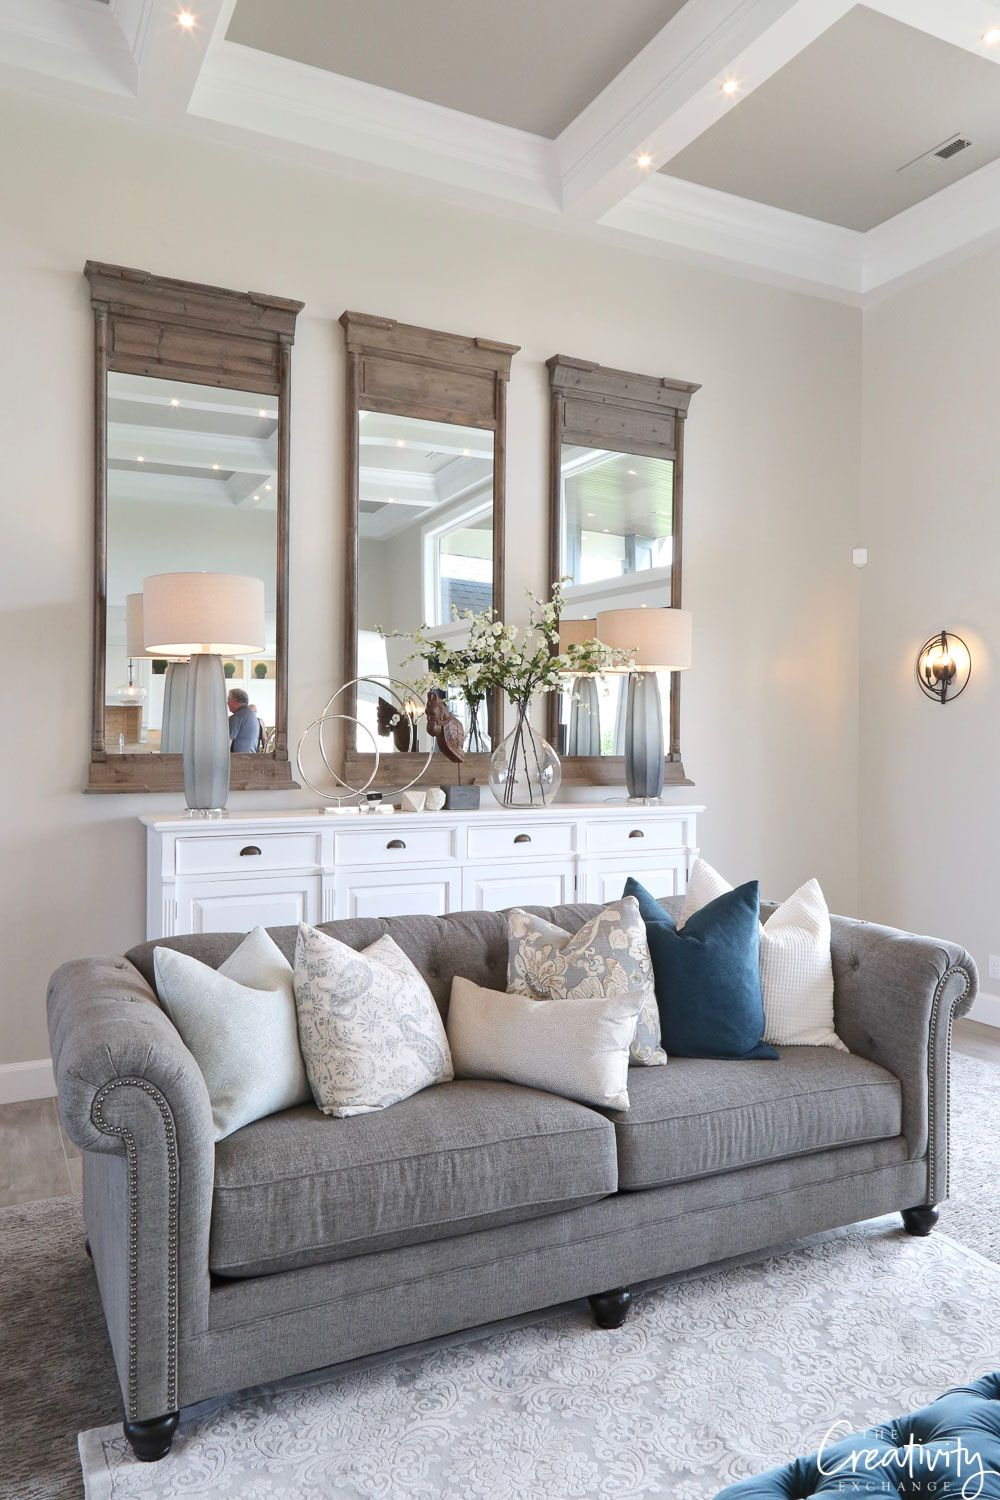 Benjamin Moore Collingwood: Color Spotlight | Neutral Paint ...